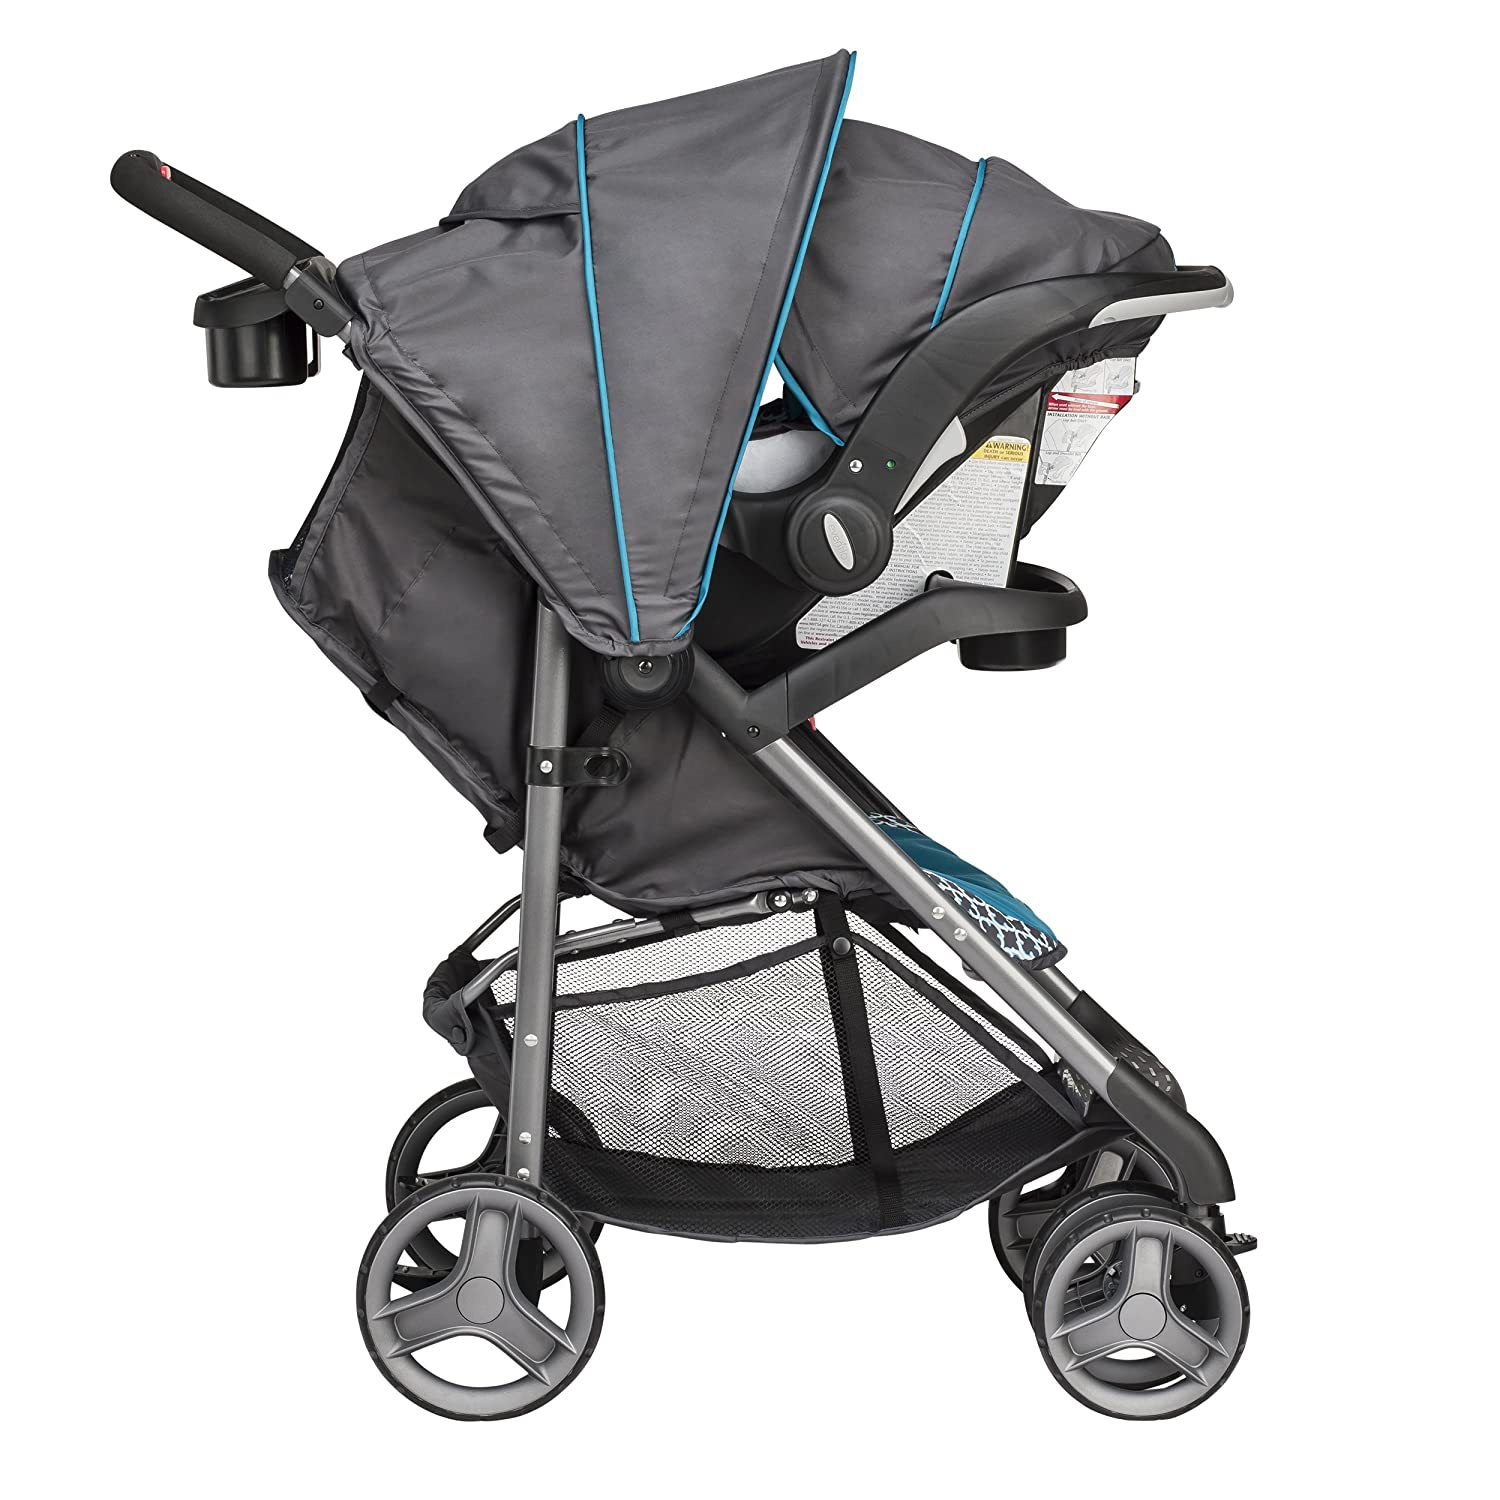 Evenflo Journey Lite Travel System W/Embrace, Monaco, Blue, White 47311330